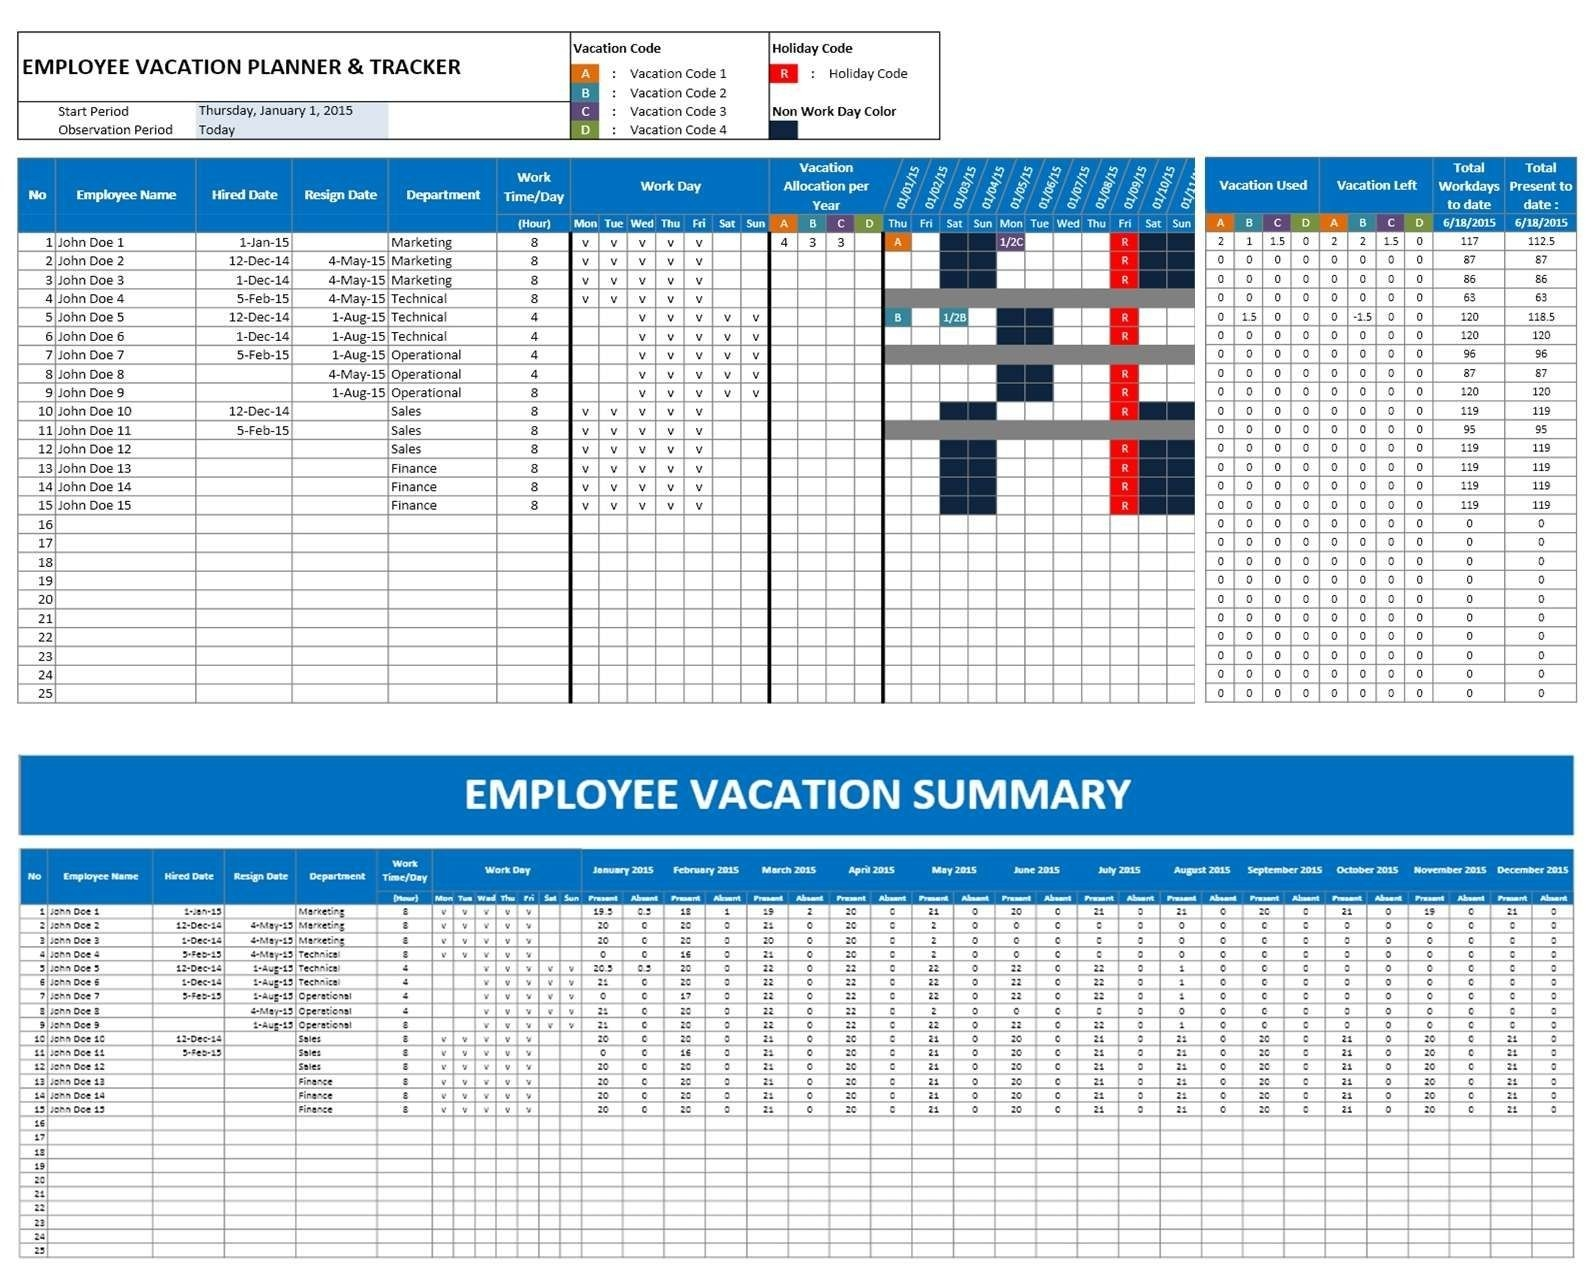 2016 Emploee Vacation Time Off Calendar Excel | Excel-Employee Vacation Calendar Template